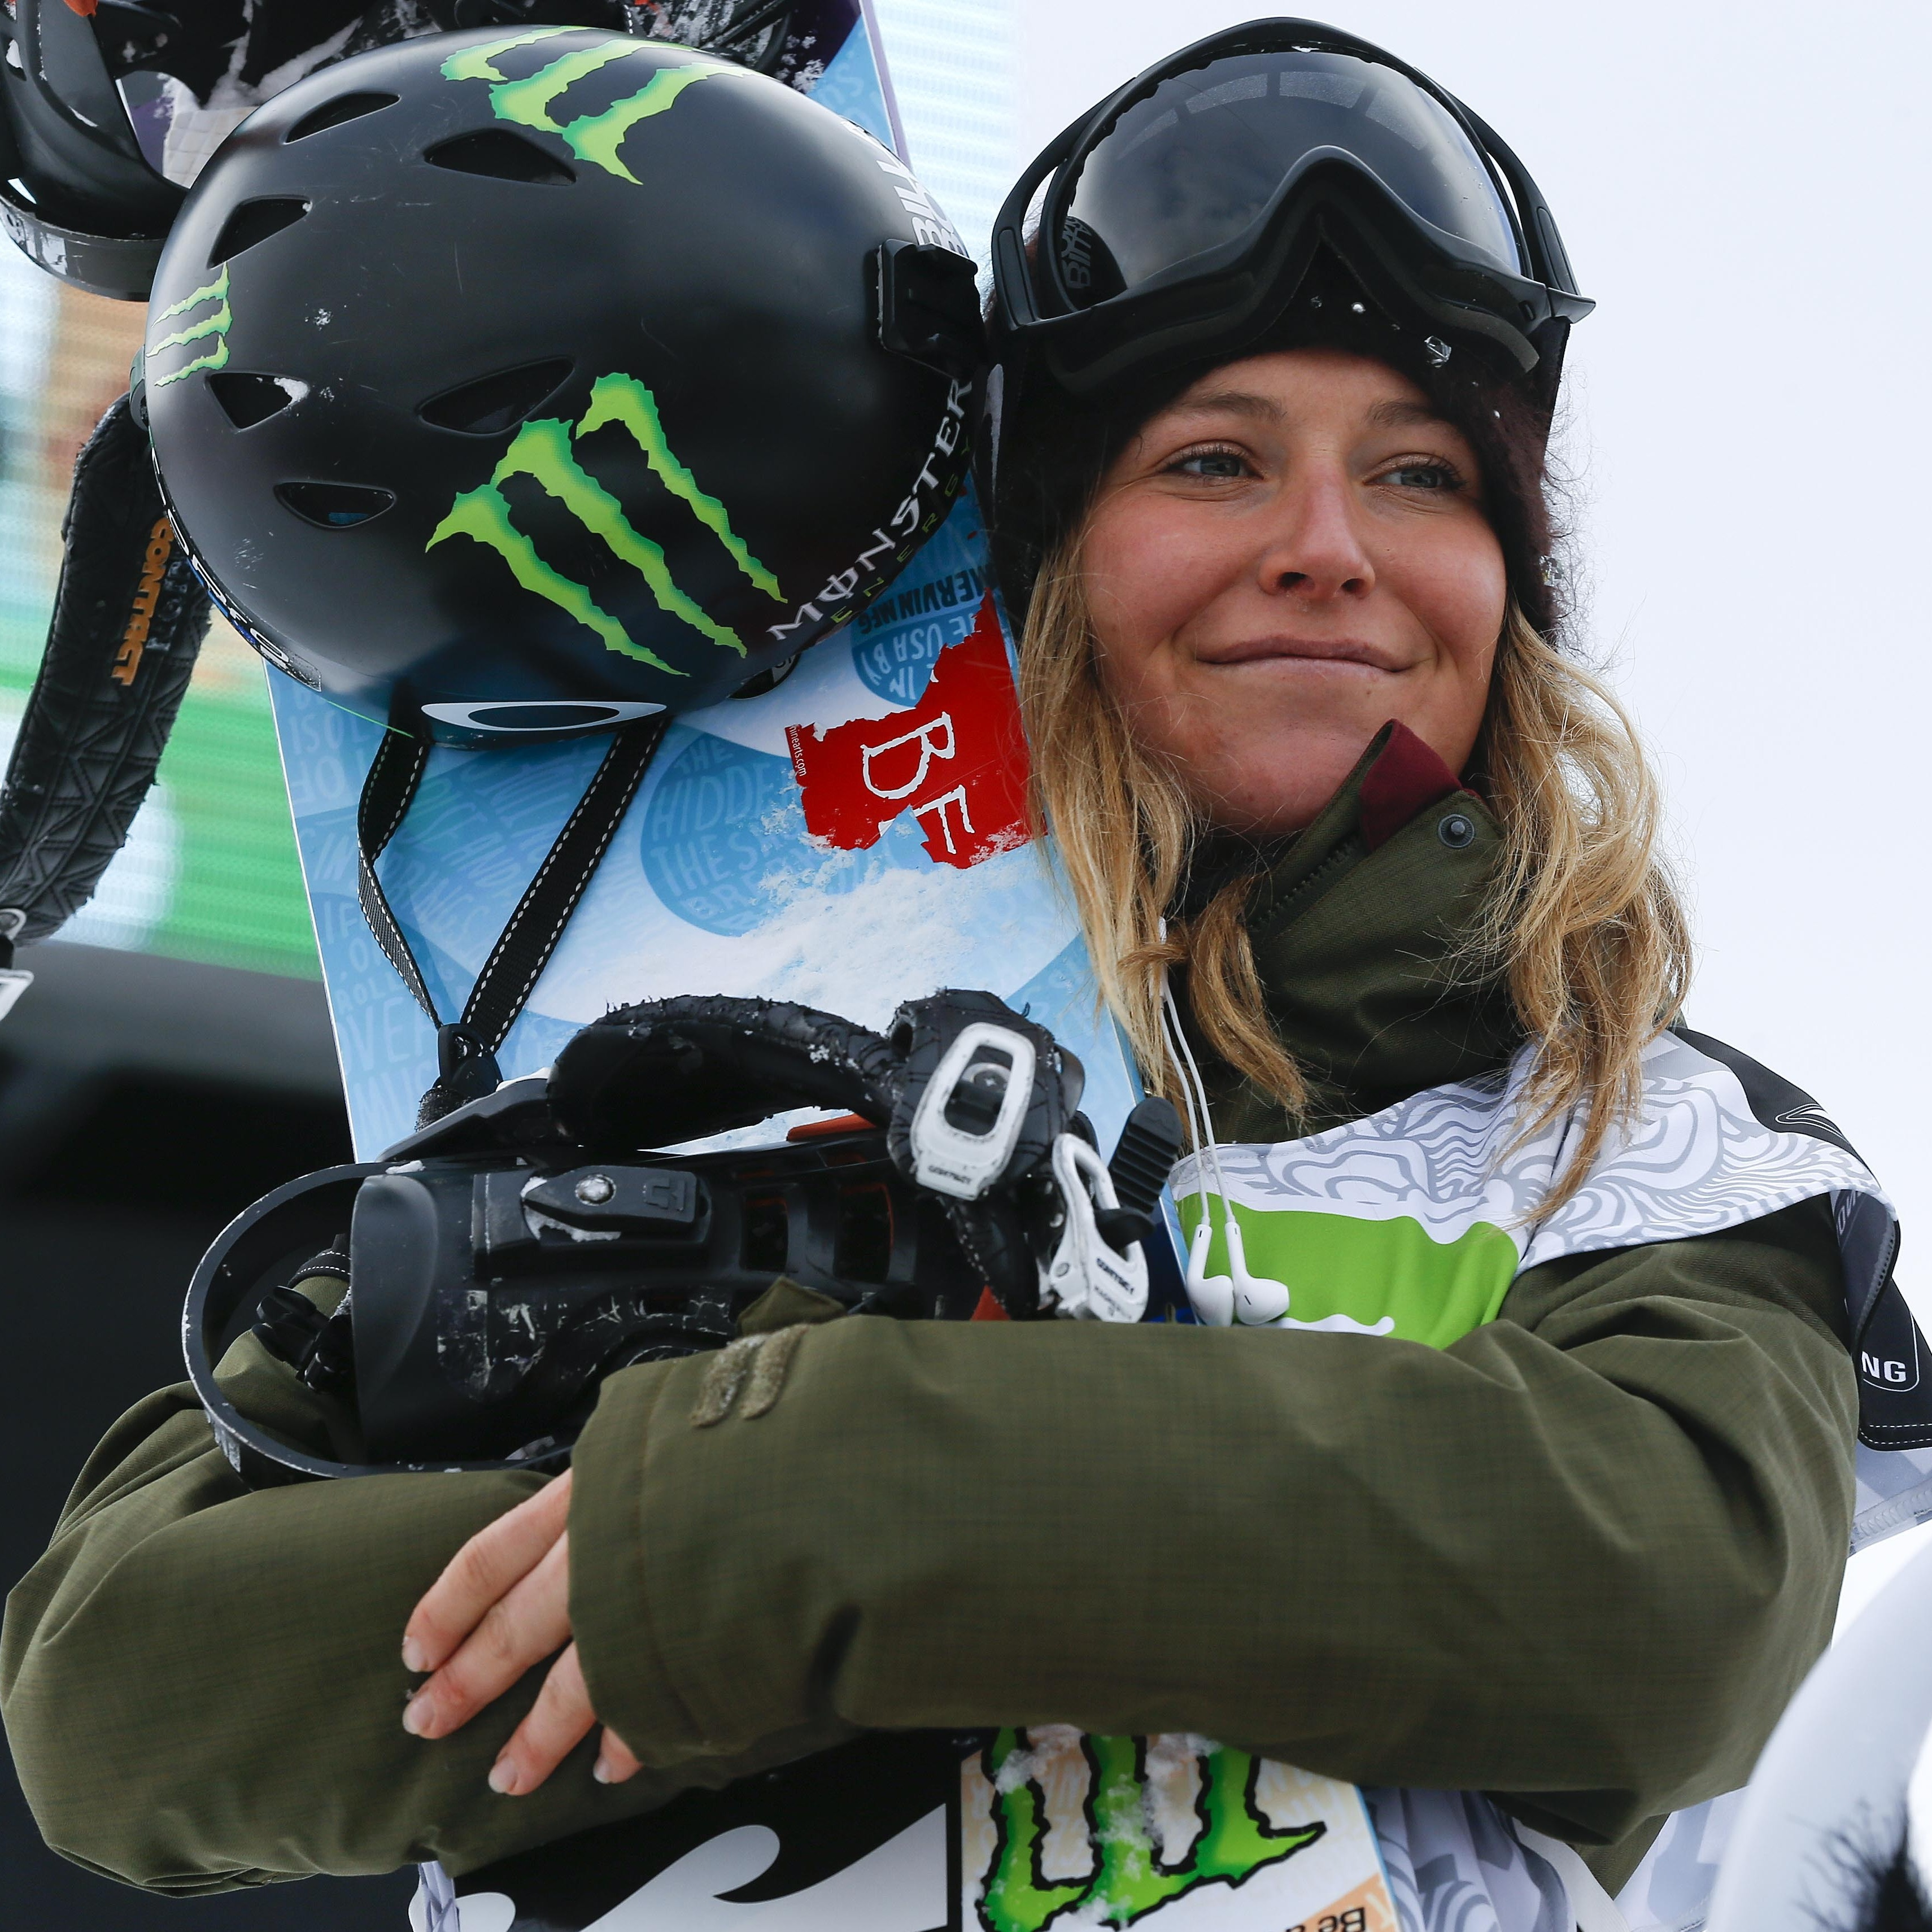 Anderson stands on the podium after winning the women's slopestyle snowboarding final at the Dew Tour iON Mountain Championships last month.